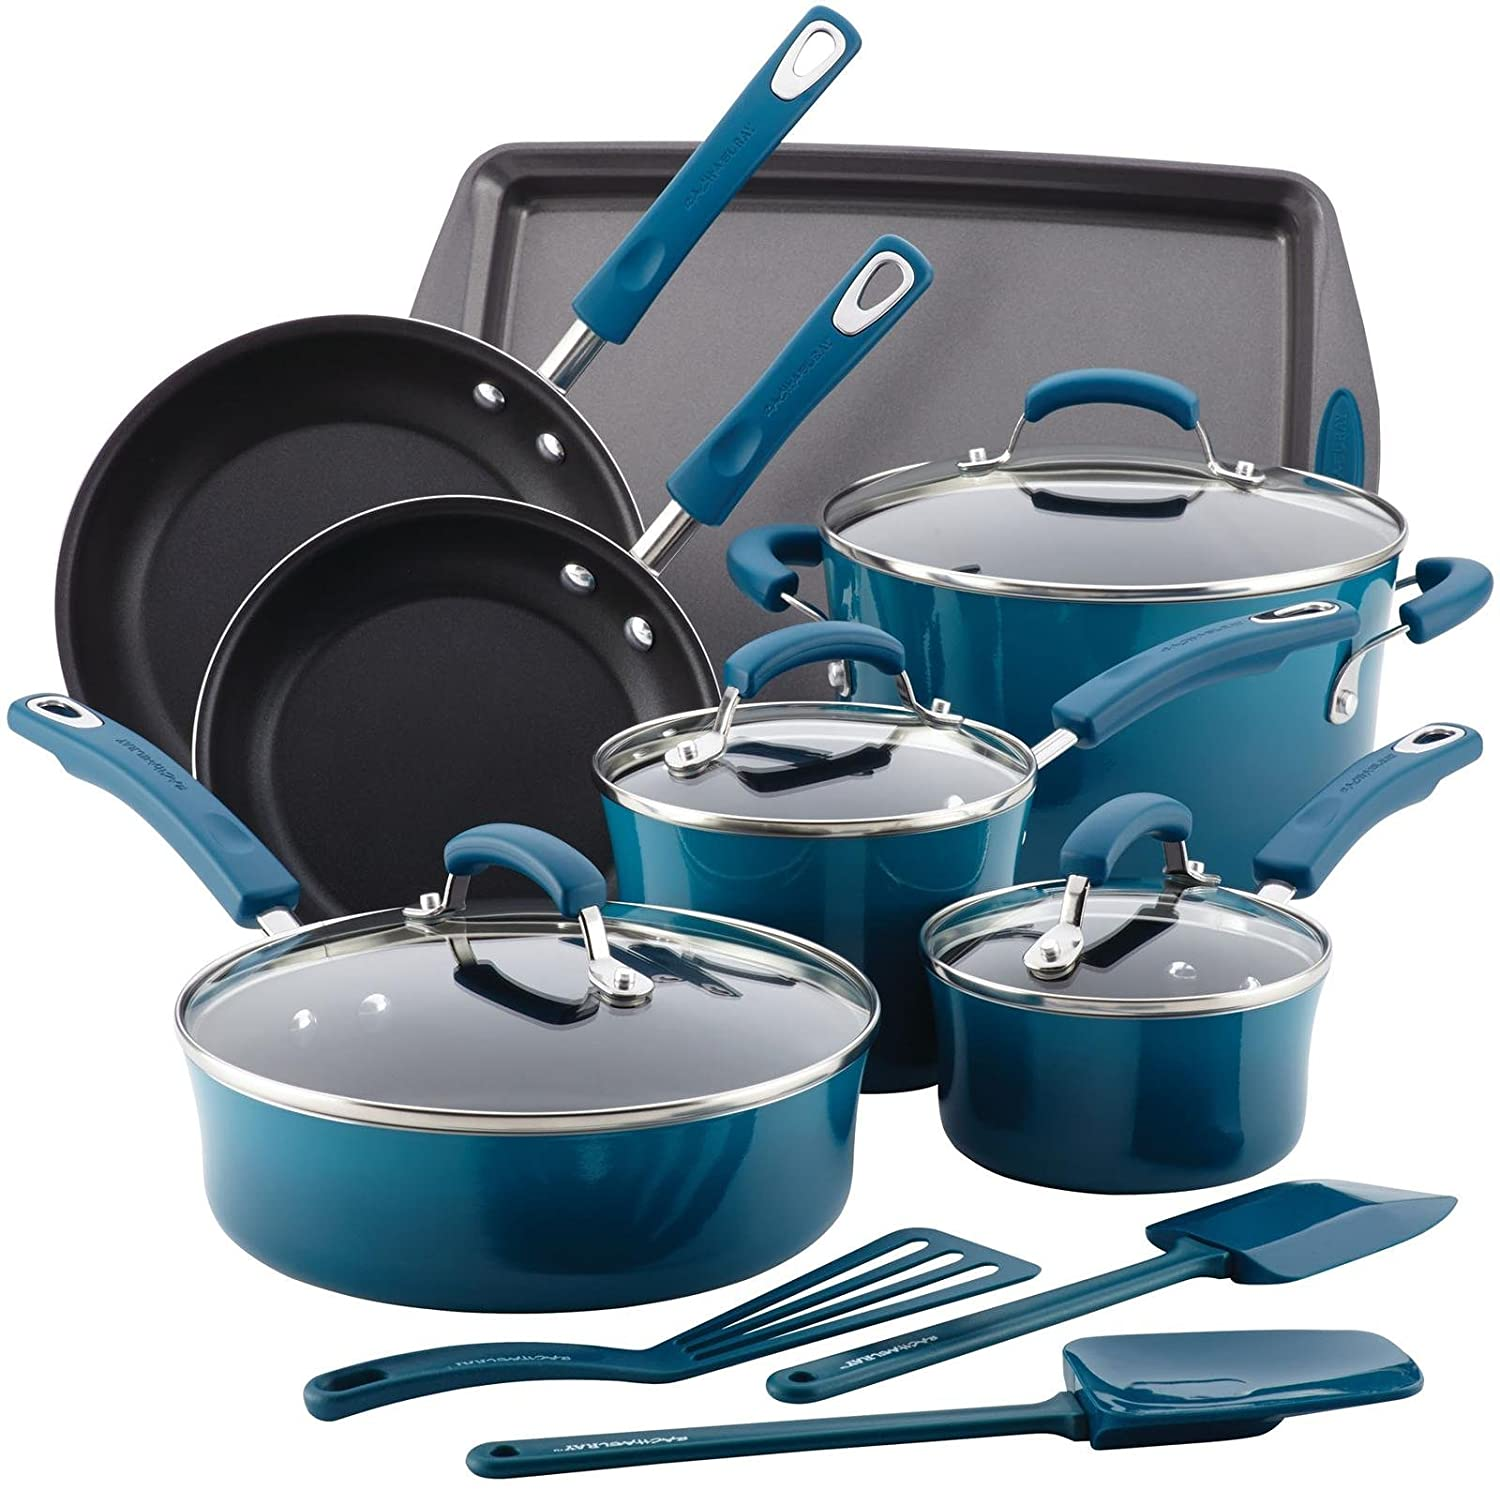 Amazon.com: Rachael Ray Hard Enamel Nonstick 14-Piece Cookware Set ...